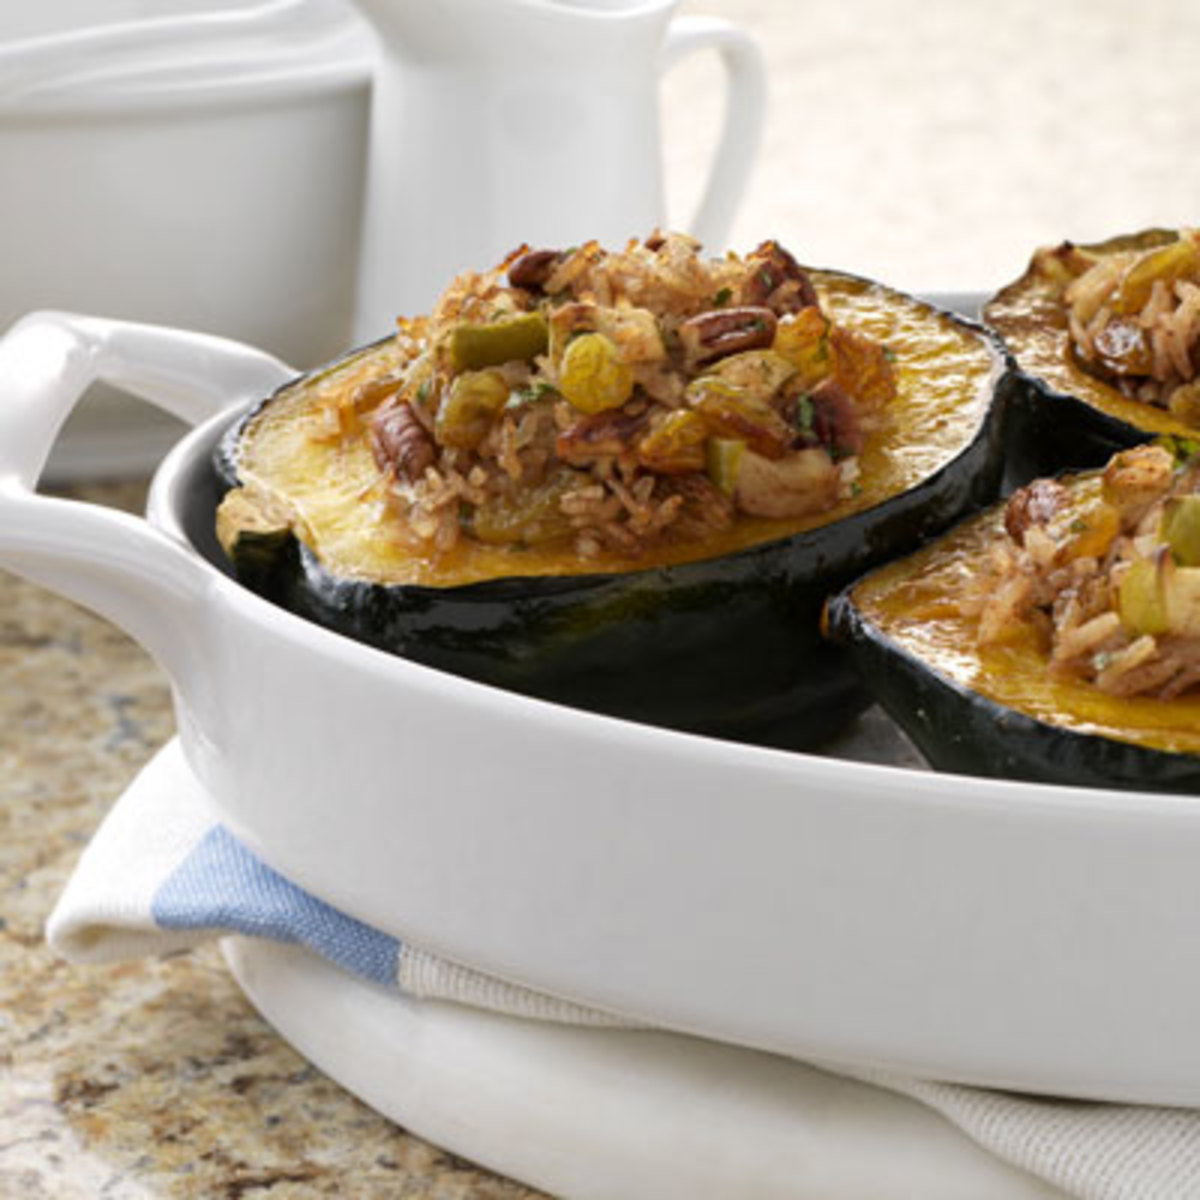 Raisin-Apple Stuffed Squash